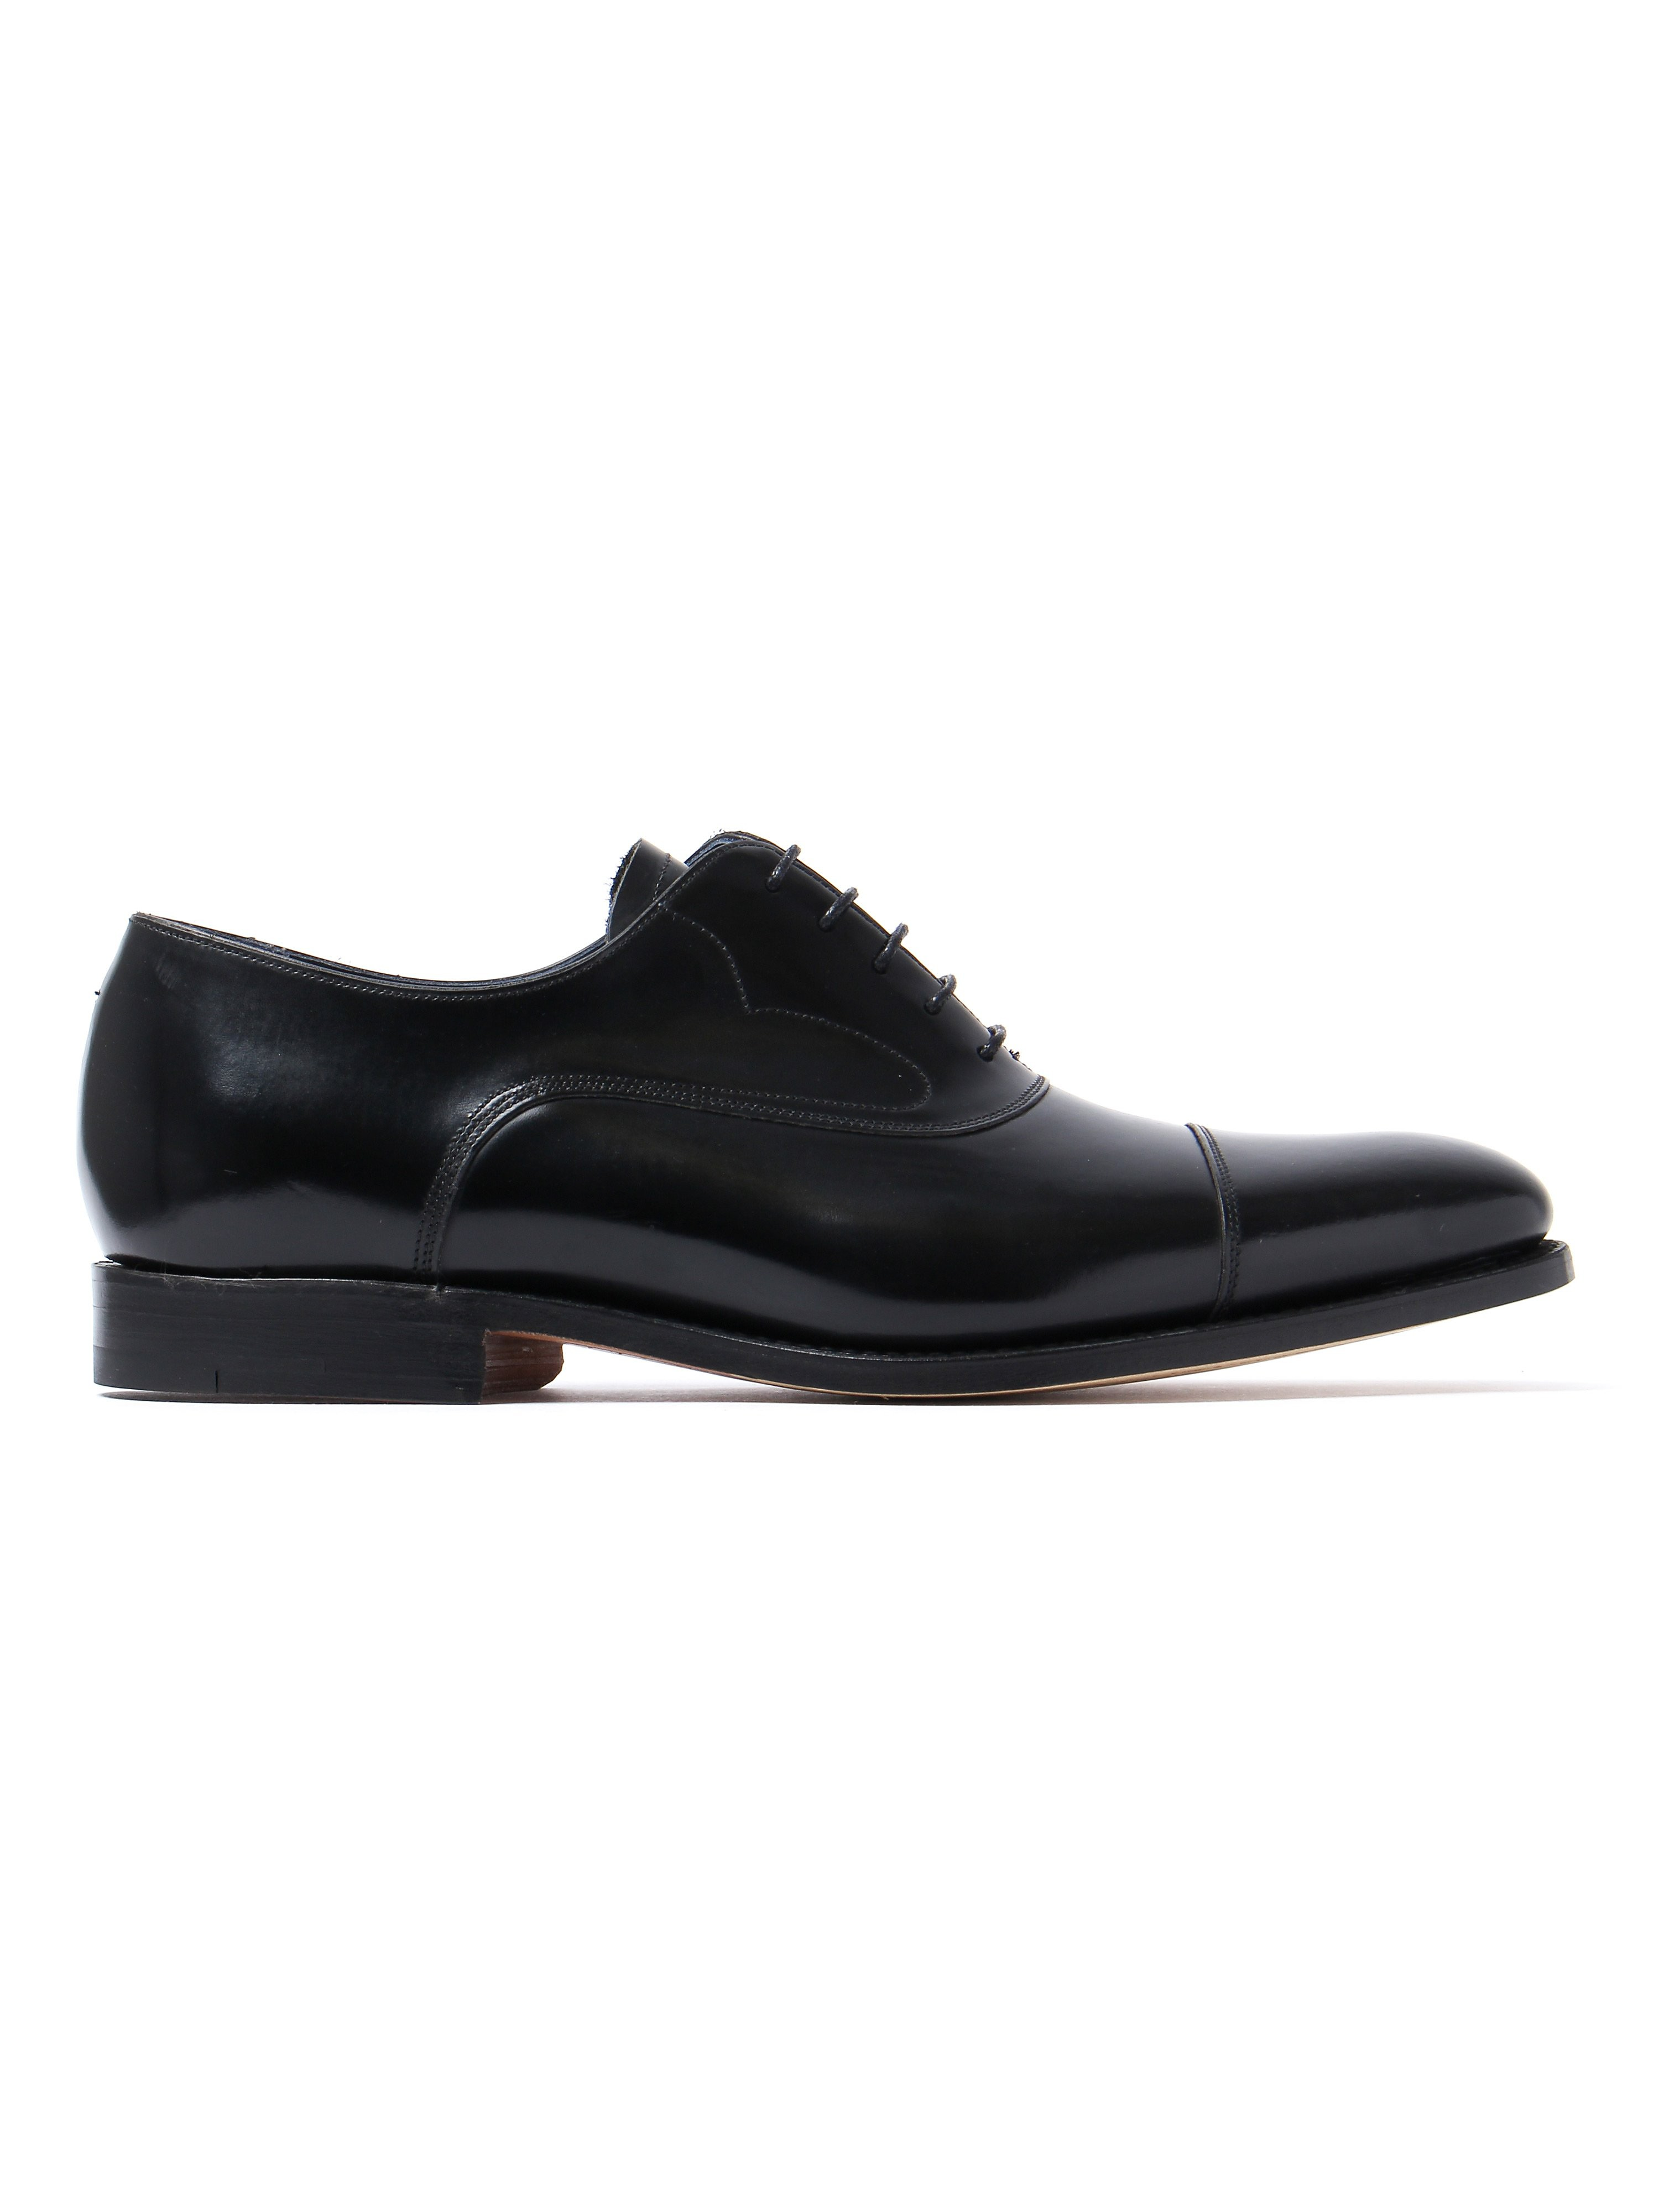 Barker Men's Hartley Hi Shine Derby Shoes – Black Leather